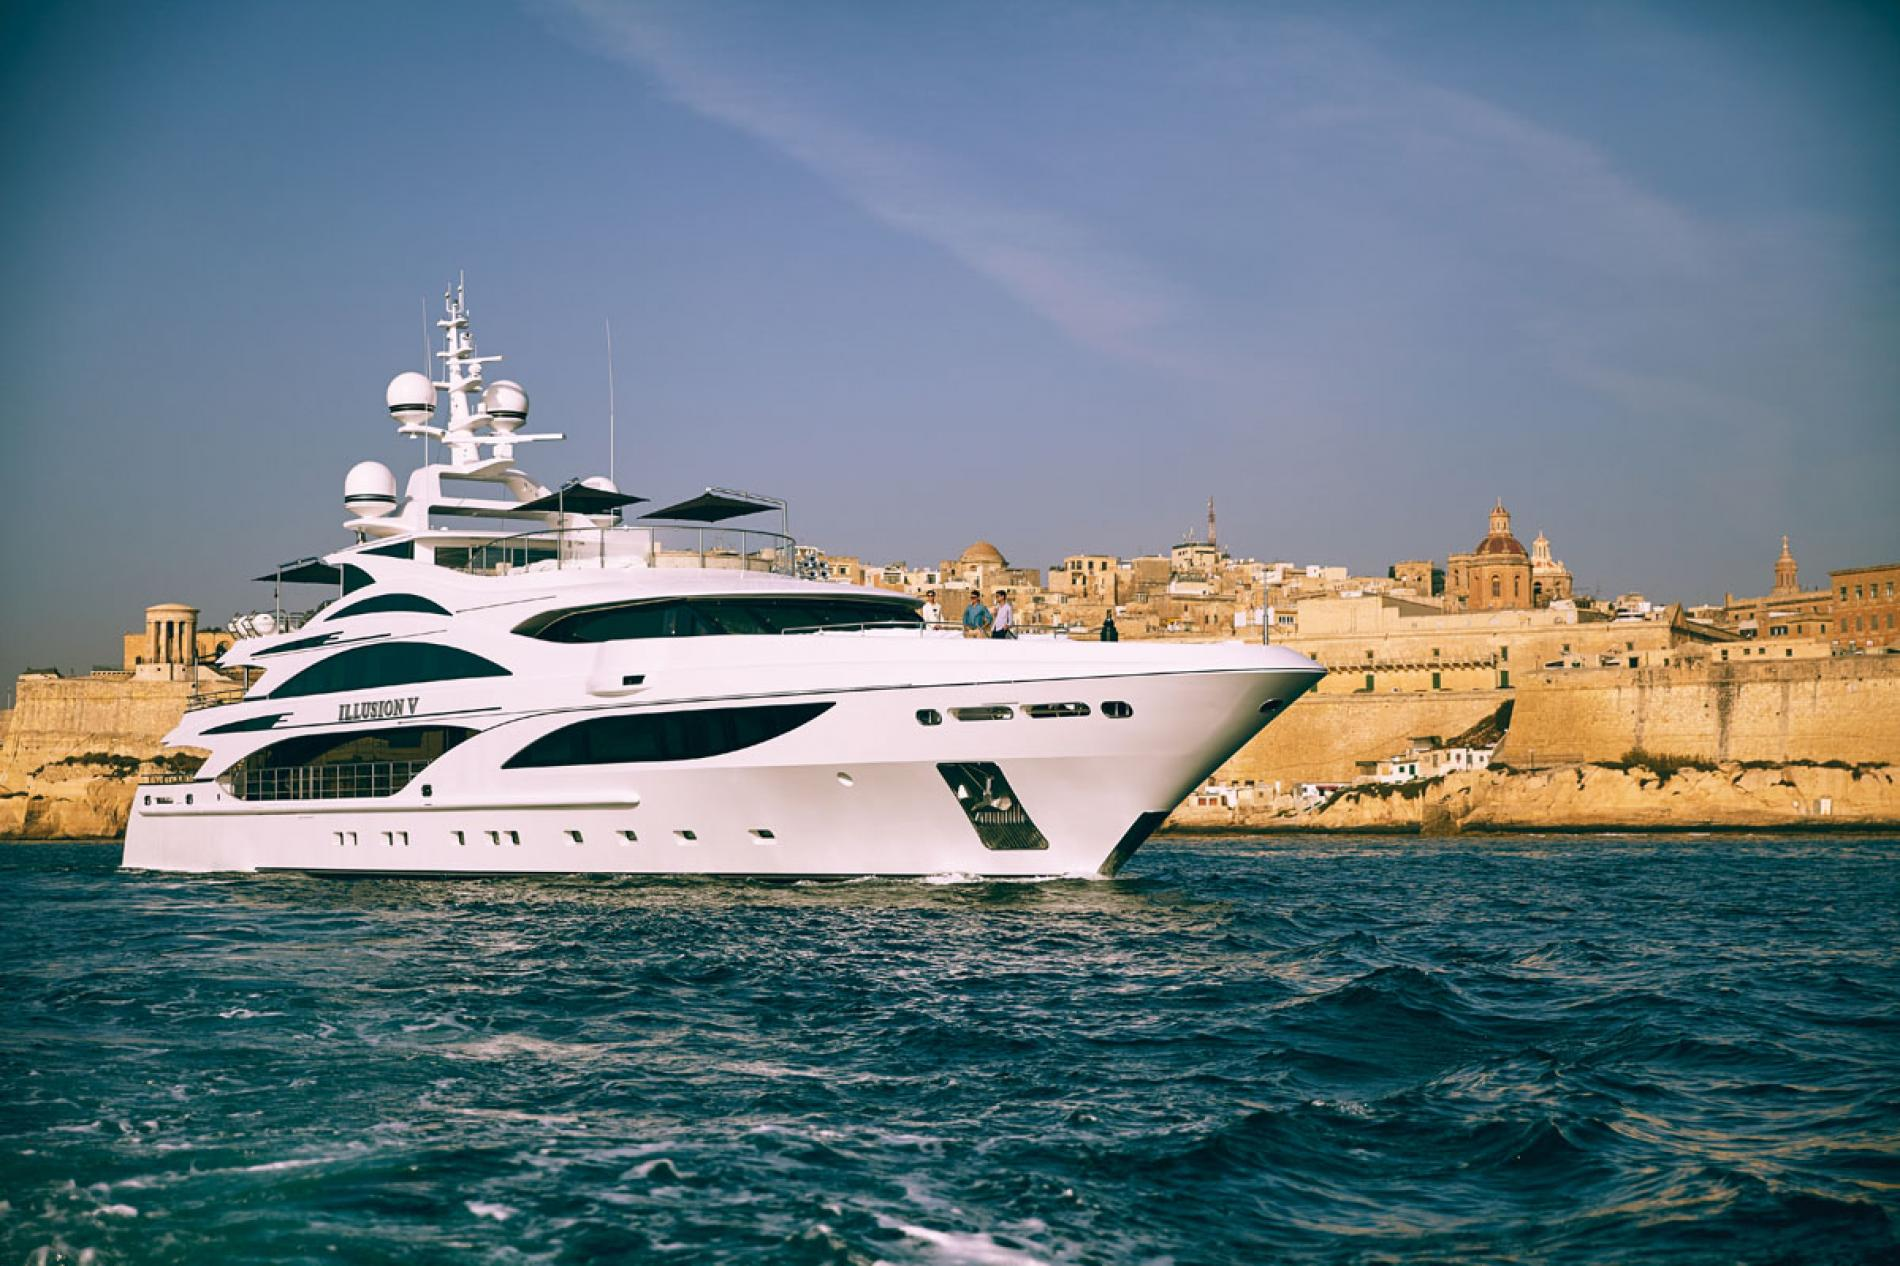 ILLUSION V - Luxury Motor Yacht For Charter - Exterior Design - Img 1 | C&N